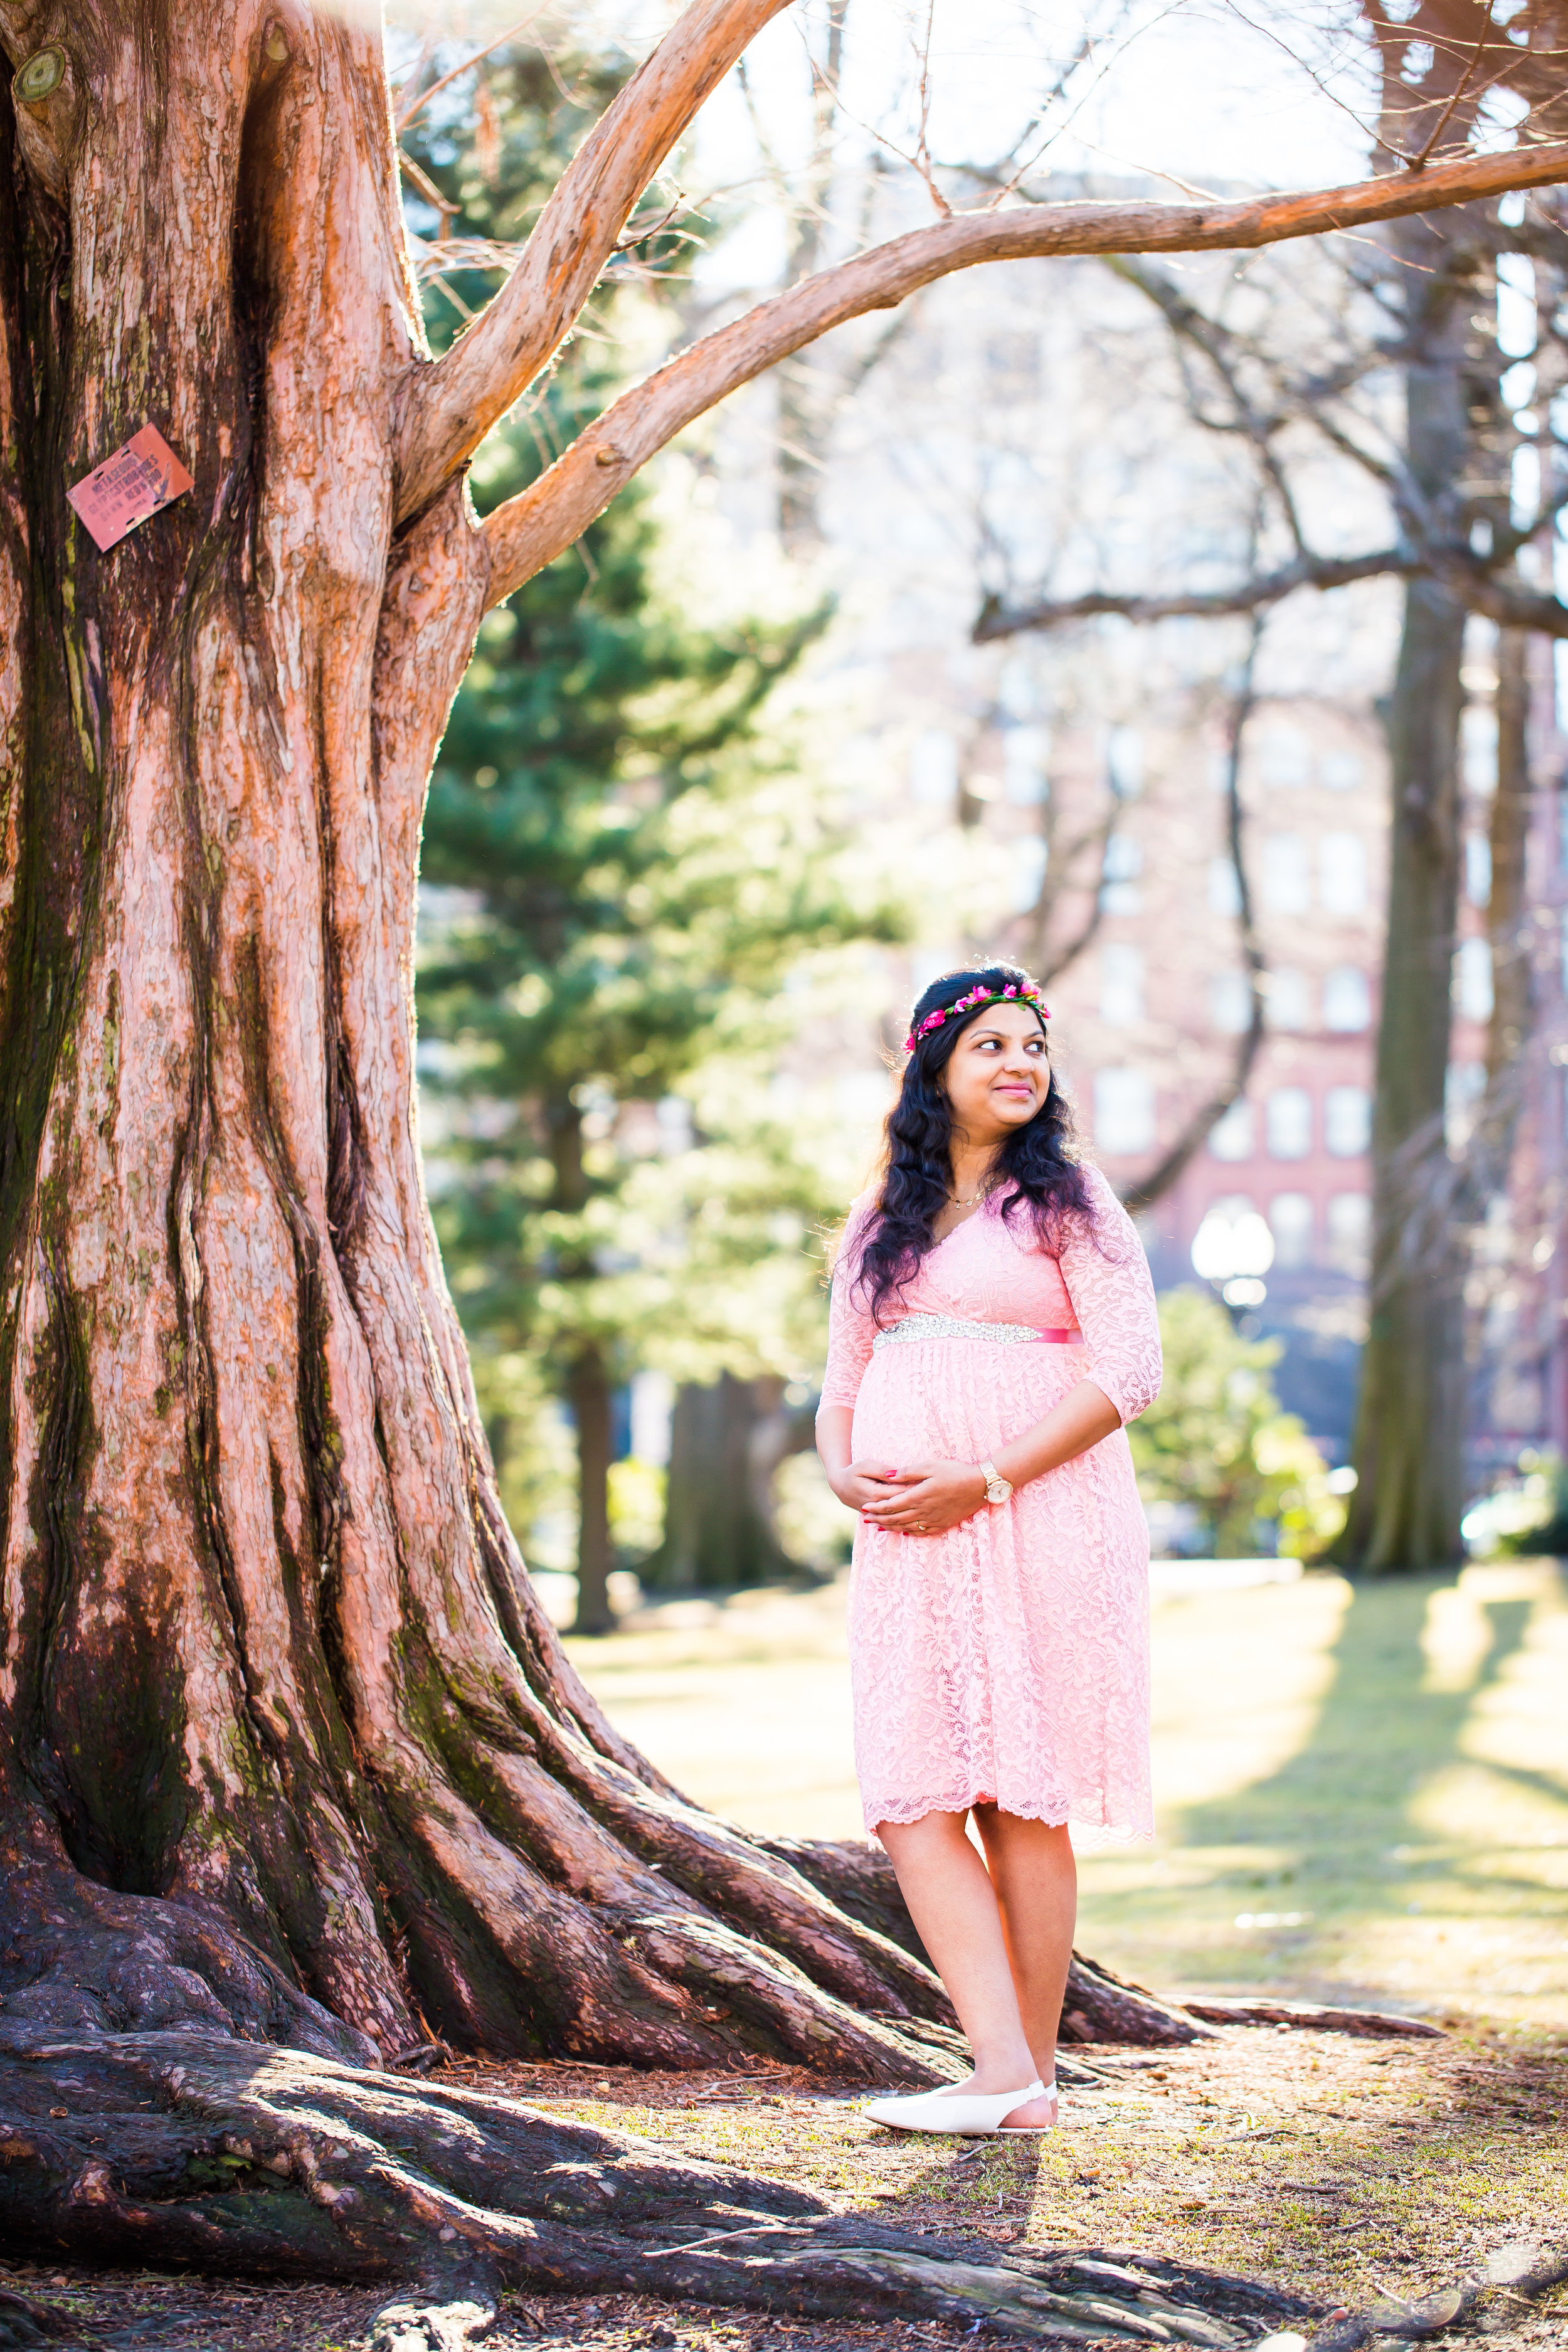 314A8805-Giovanni The Photographer-Maternity Photography in Boston MA Newborn-Boston Public Garden.jpg